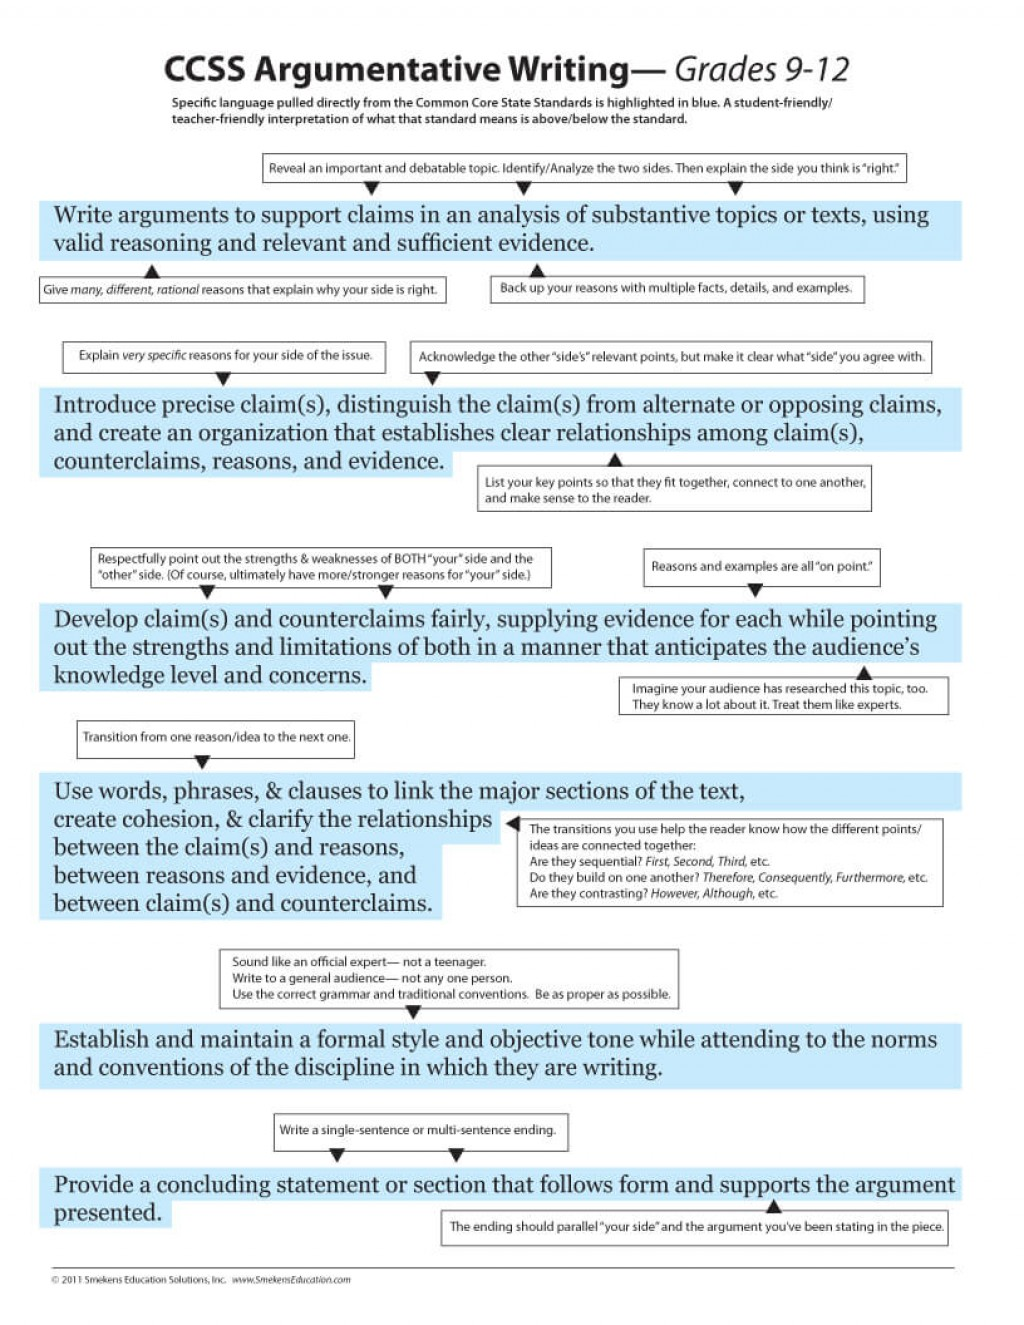 007 Ccss Argumentative Grade 9 12o Persuasive Vs Essay Awful Are And Essays The Same Differentiate Large